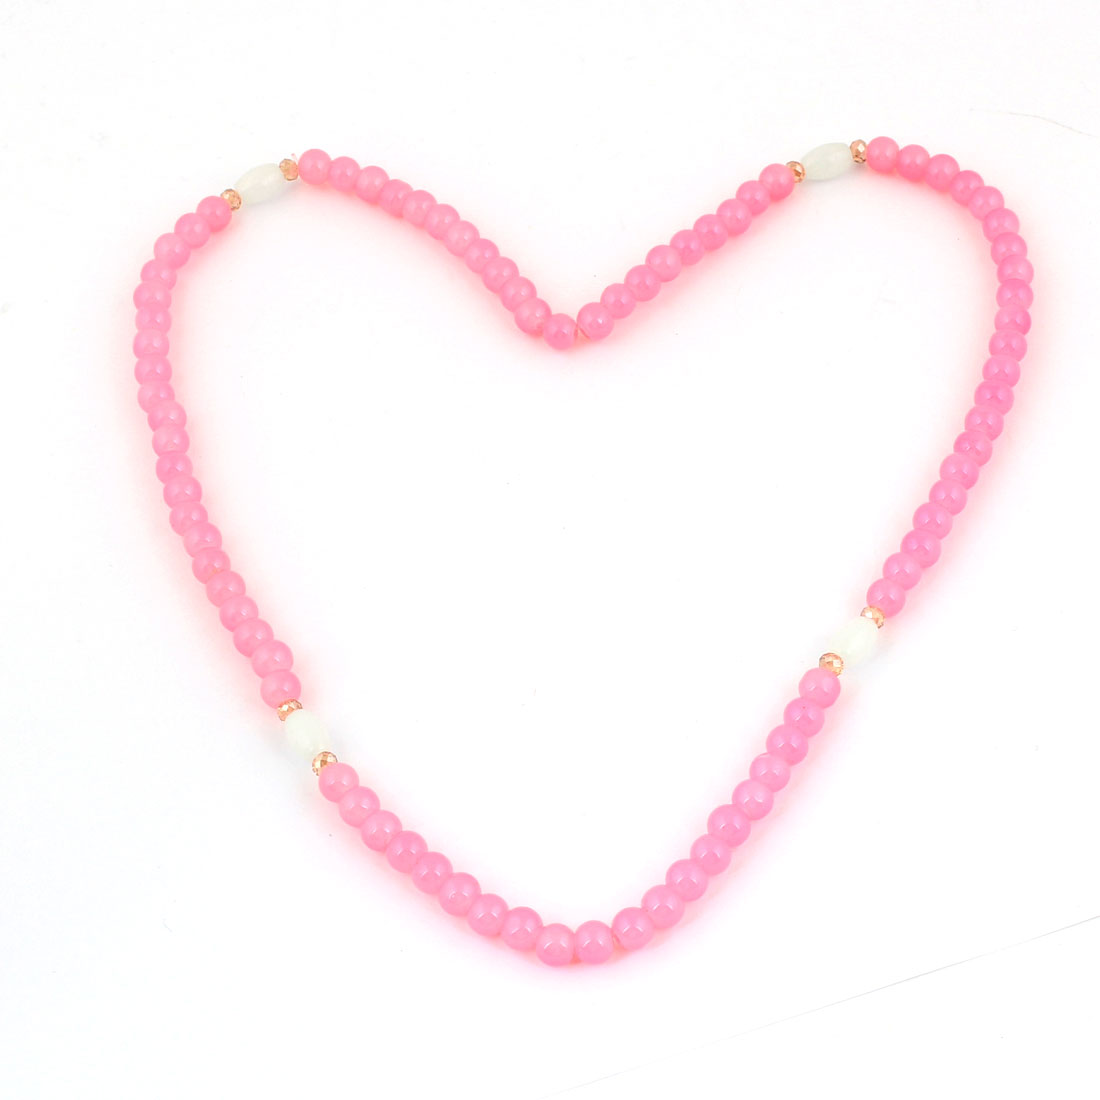 Plastic Pink White Beads Detailing Pendant Bracelet Ring Necklace for Girls